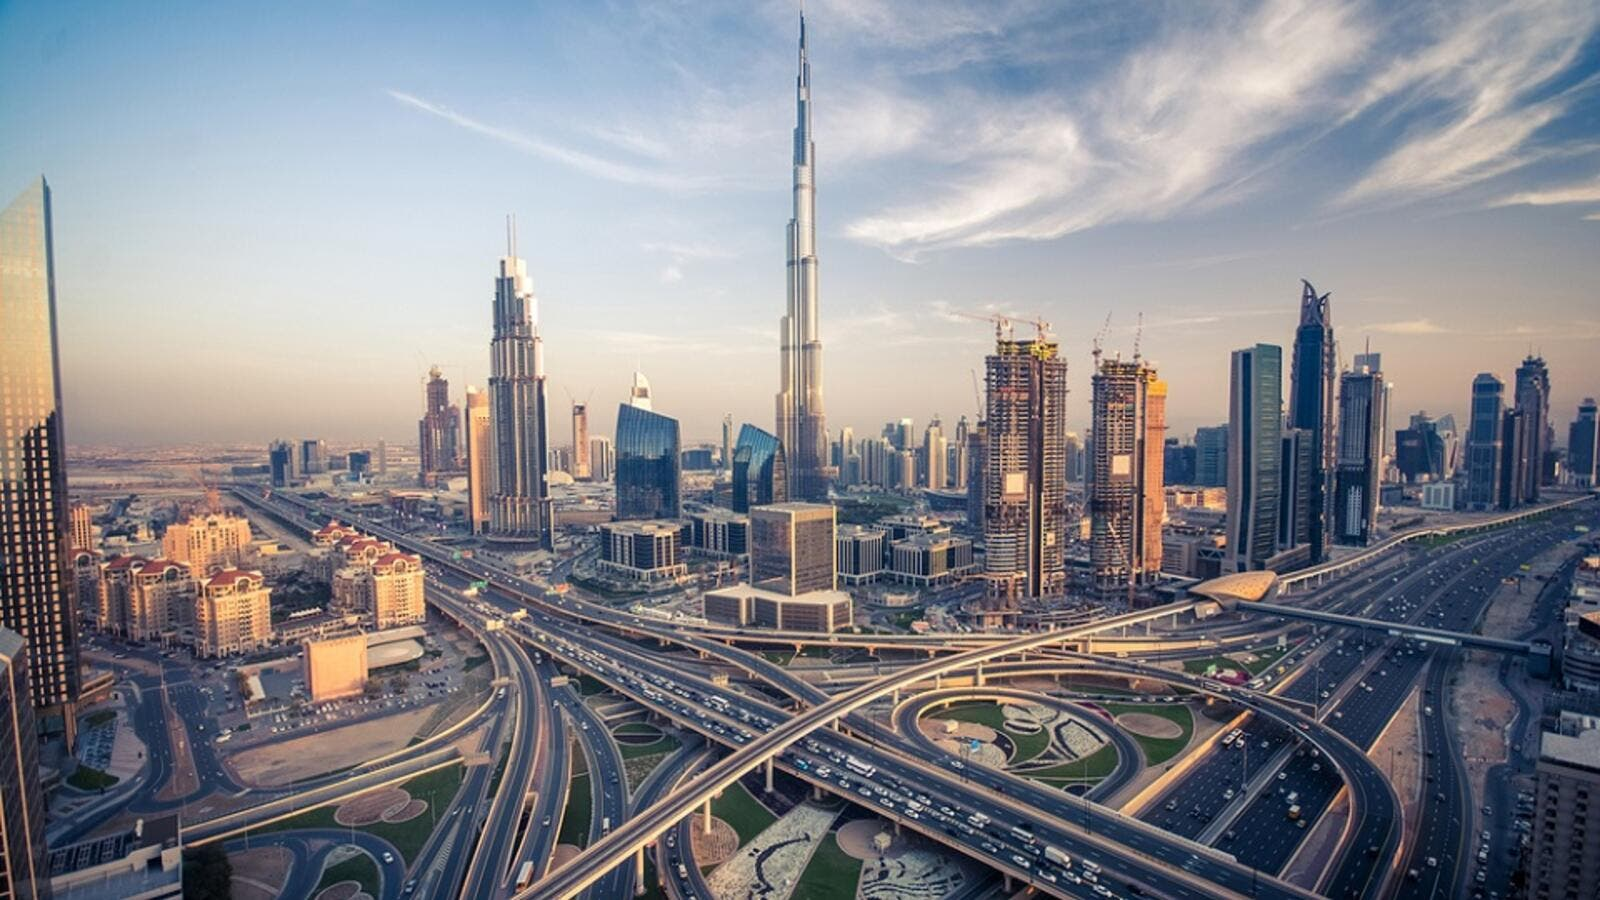 Dubai's Economy to Grow at 2 5 Percent Annually Over the